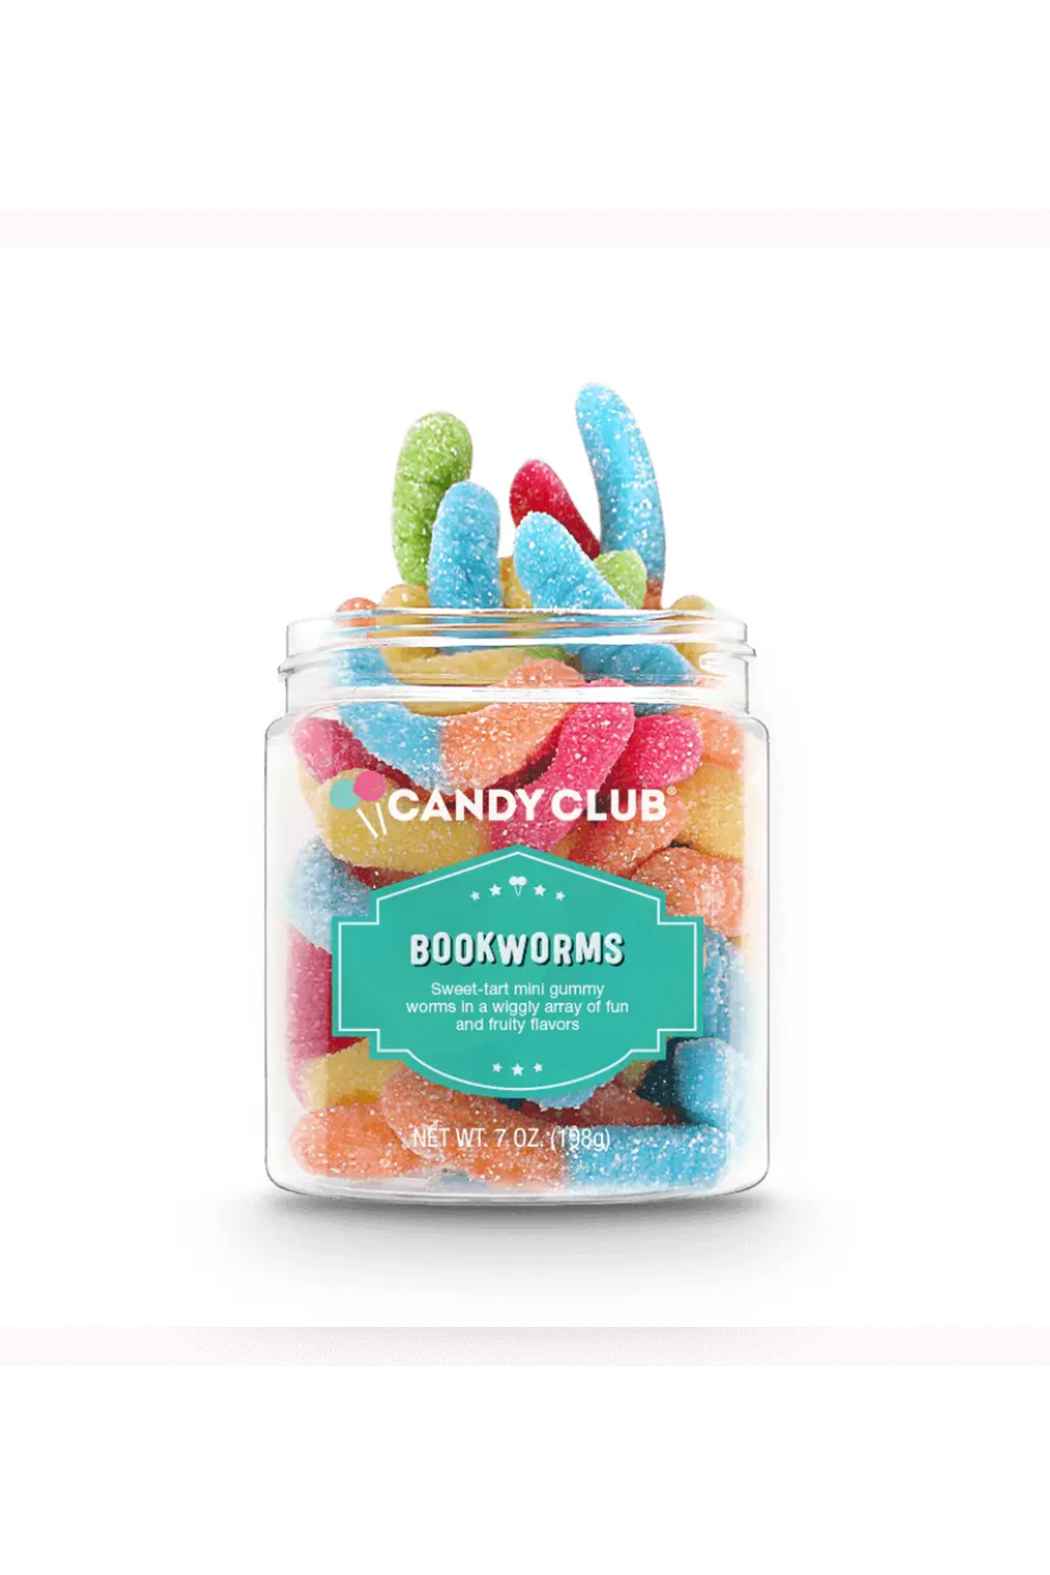 Candy Club Bookworms - Main Image